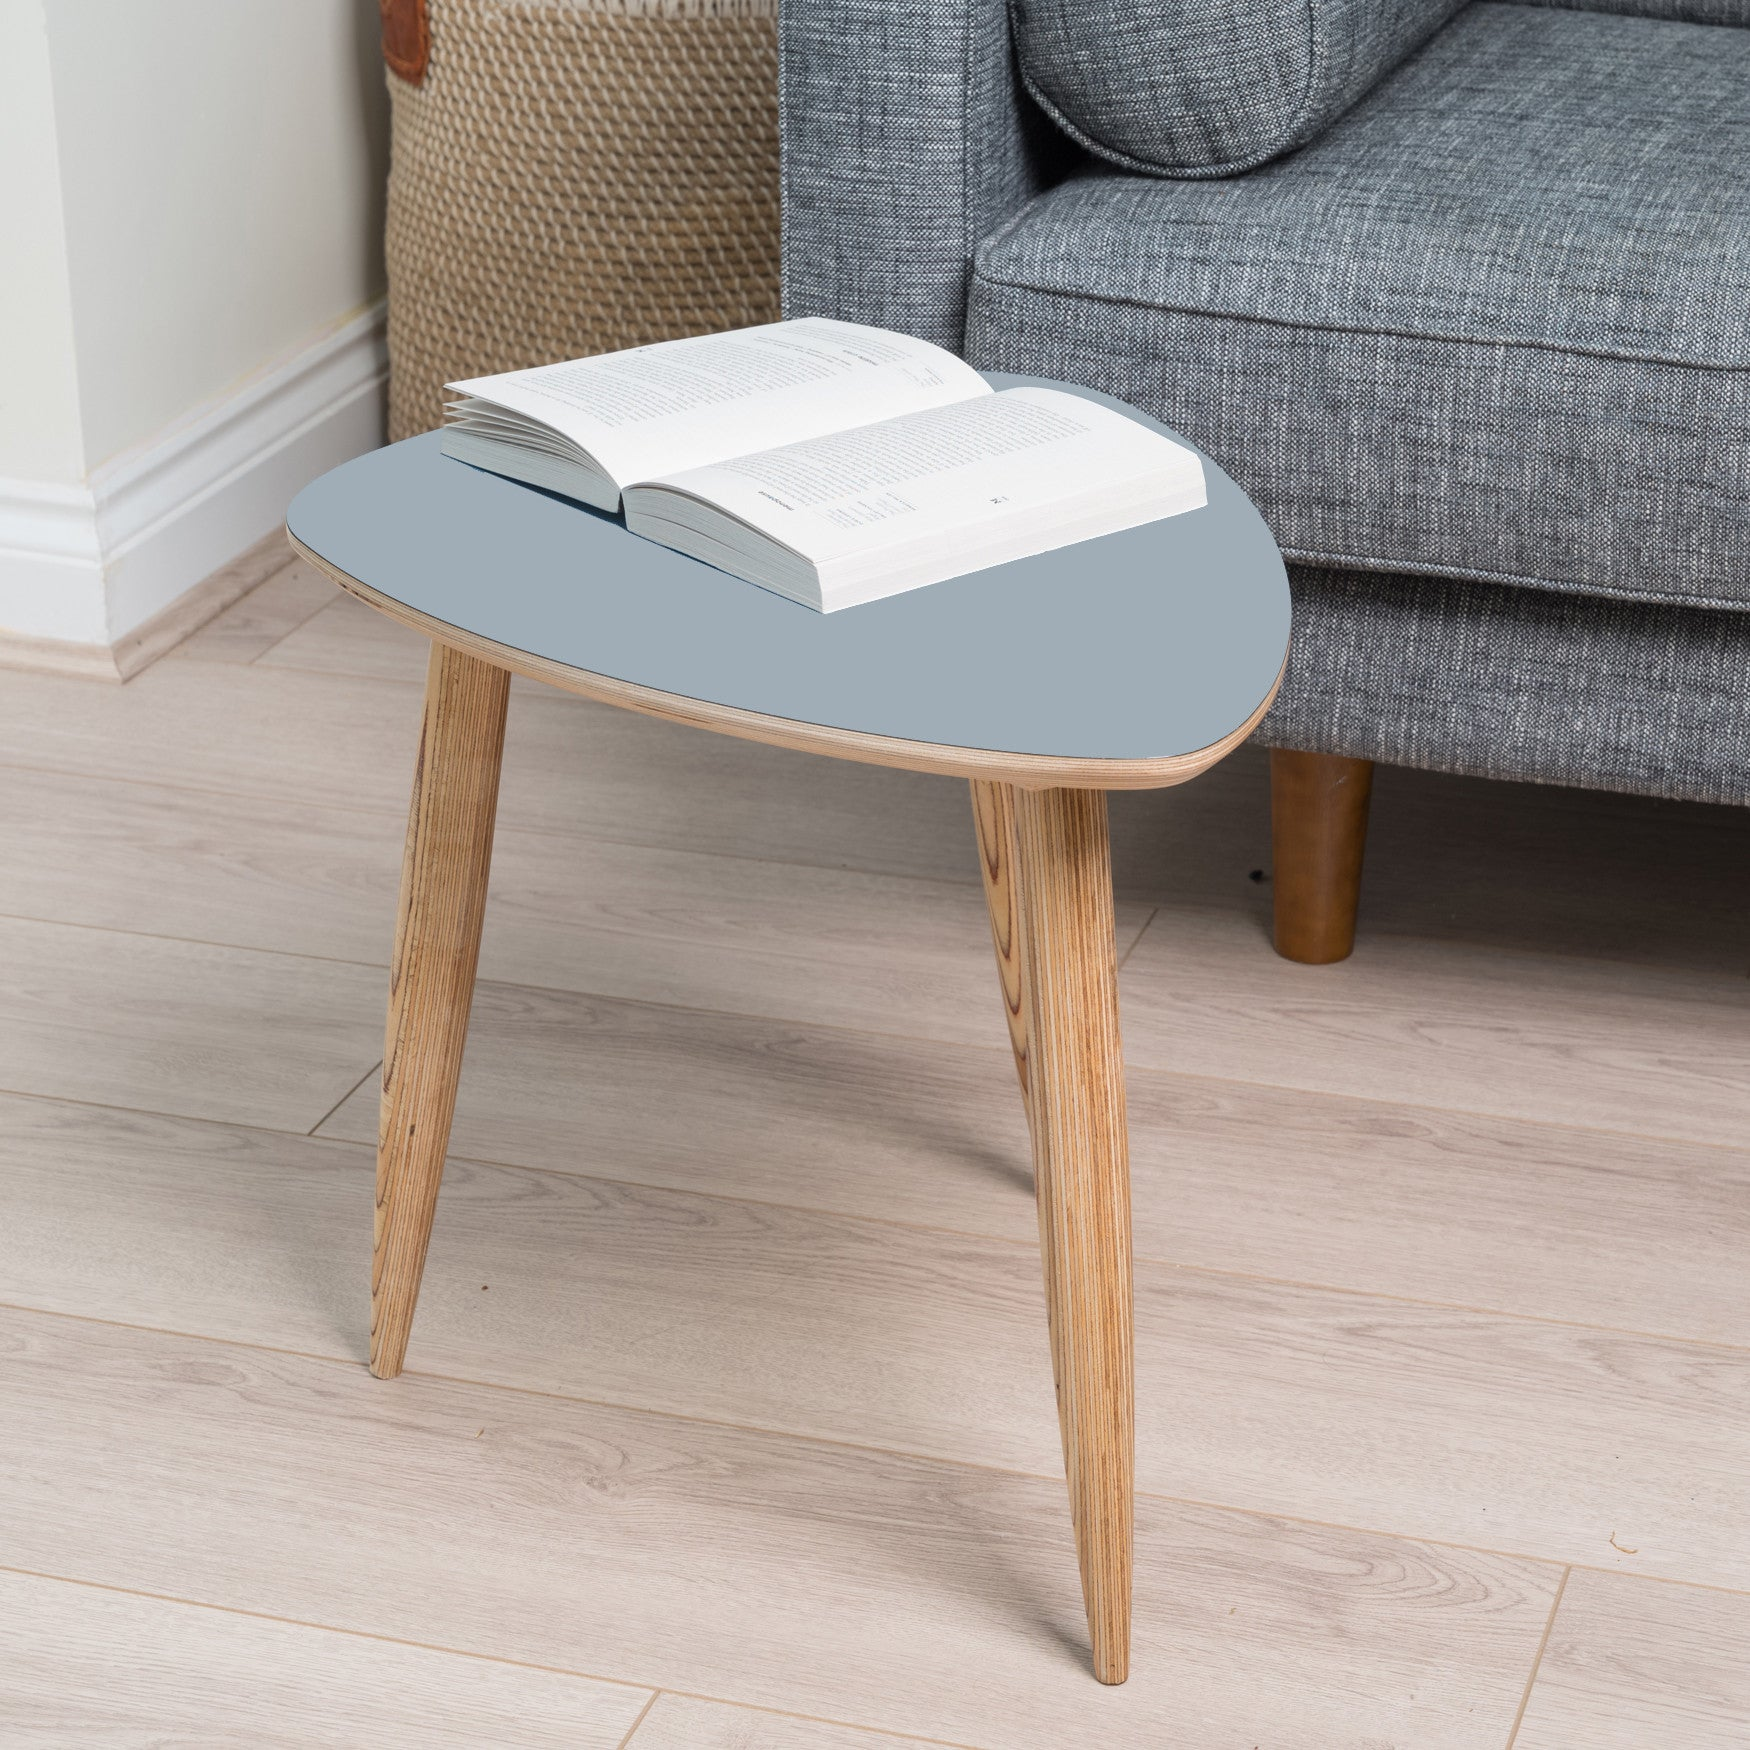 Grey Laminate and Birchwood Handcrafted Pebble Shaped Mid Century Style Side Table